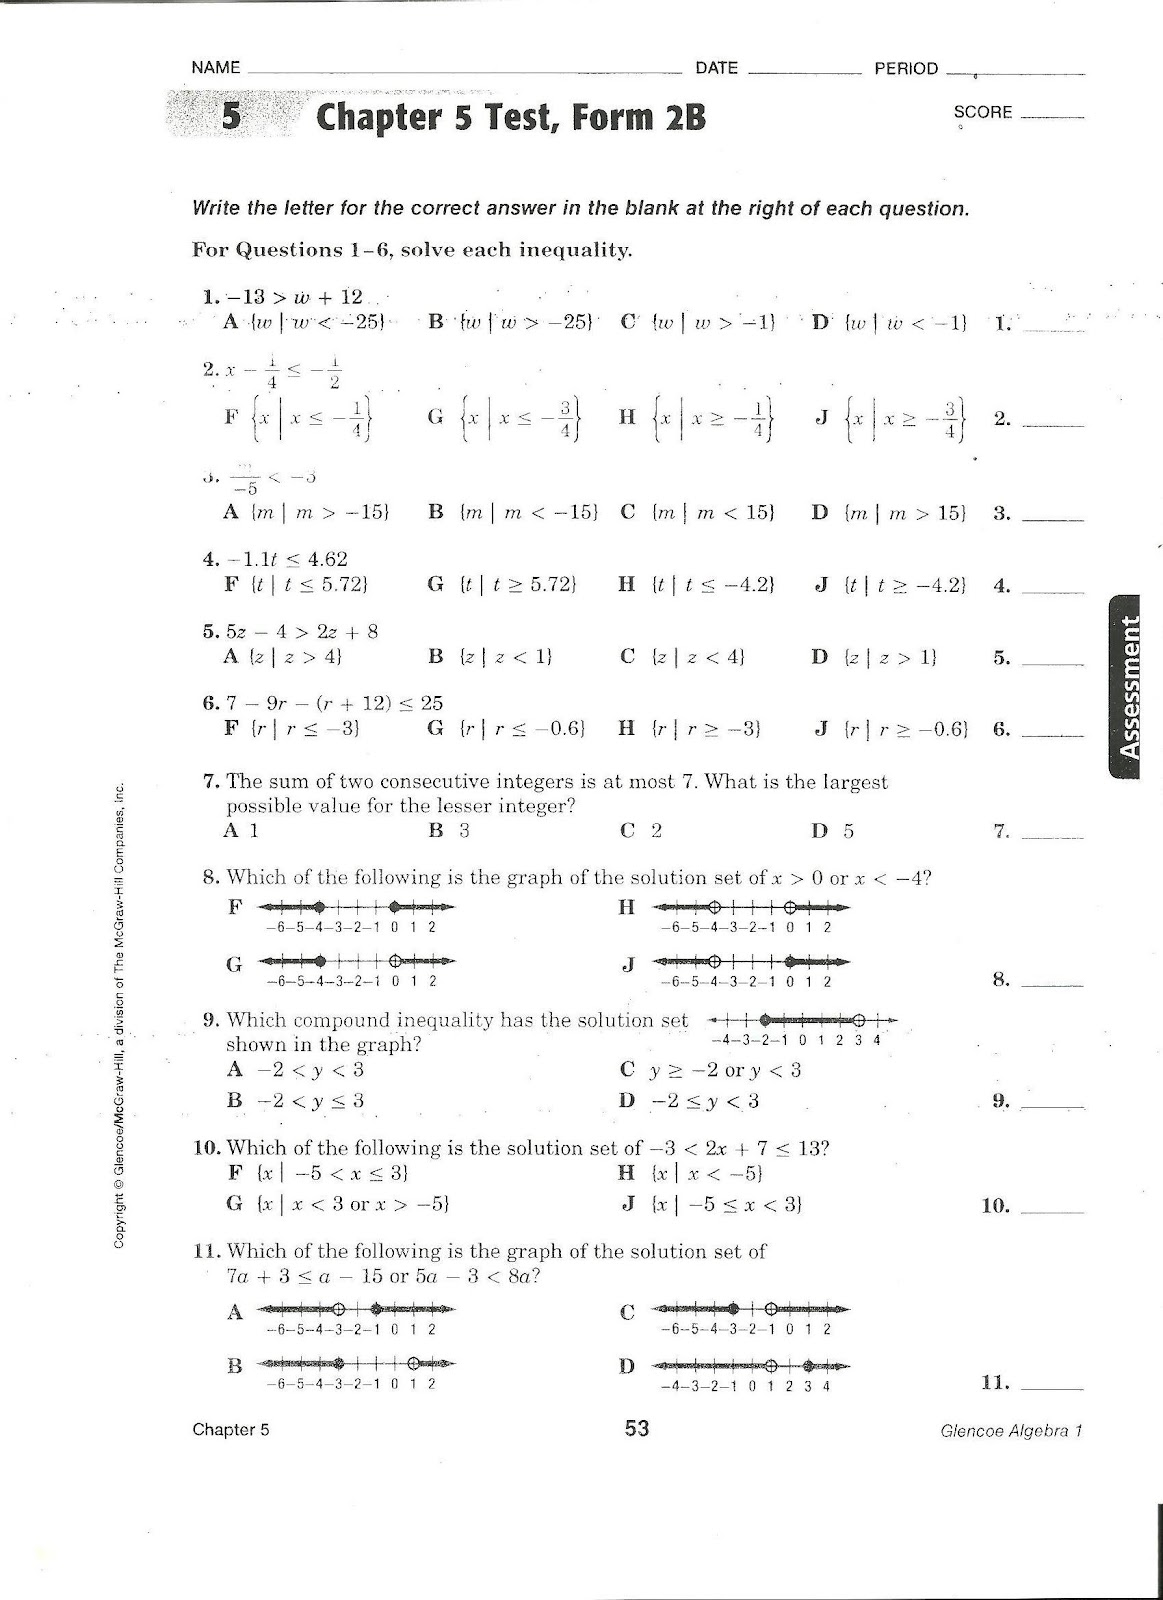 Worksheets Holt Mcdougal Mathematics Worksheets holt mcdougal algebra 2 worksheet answers